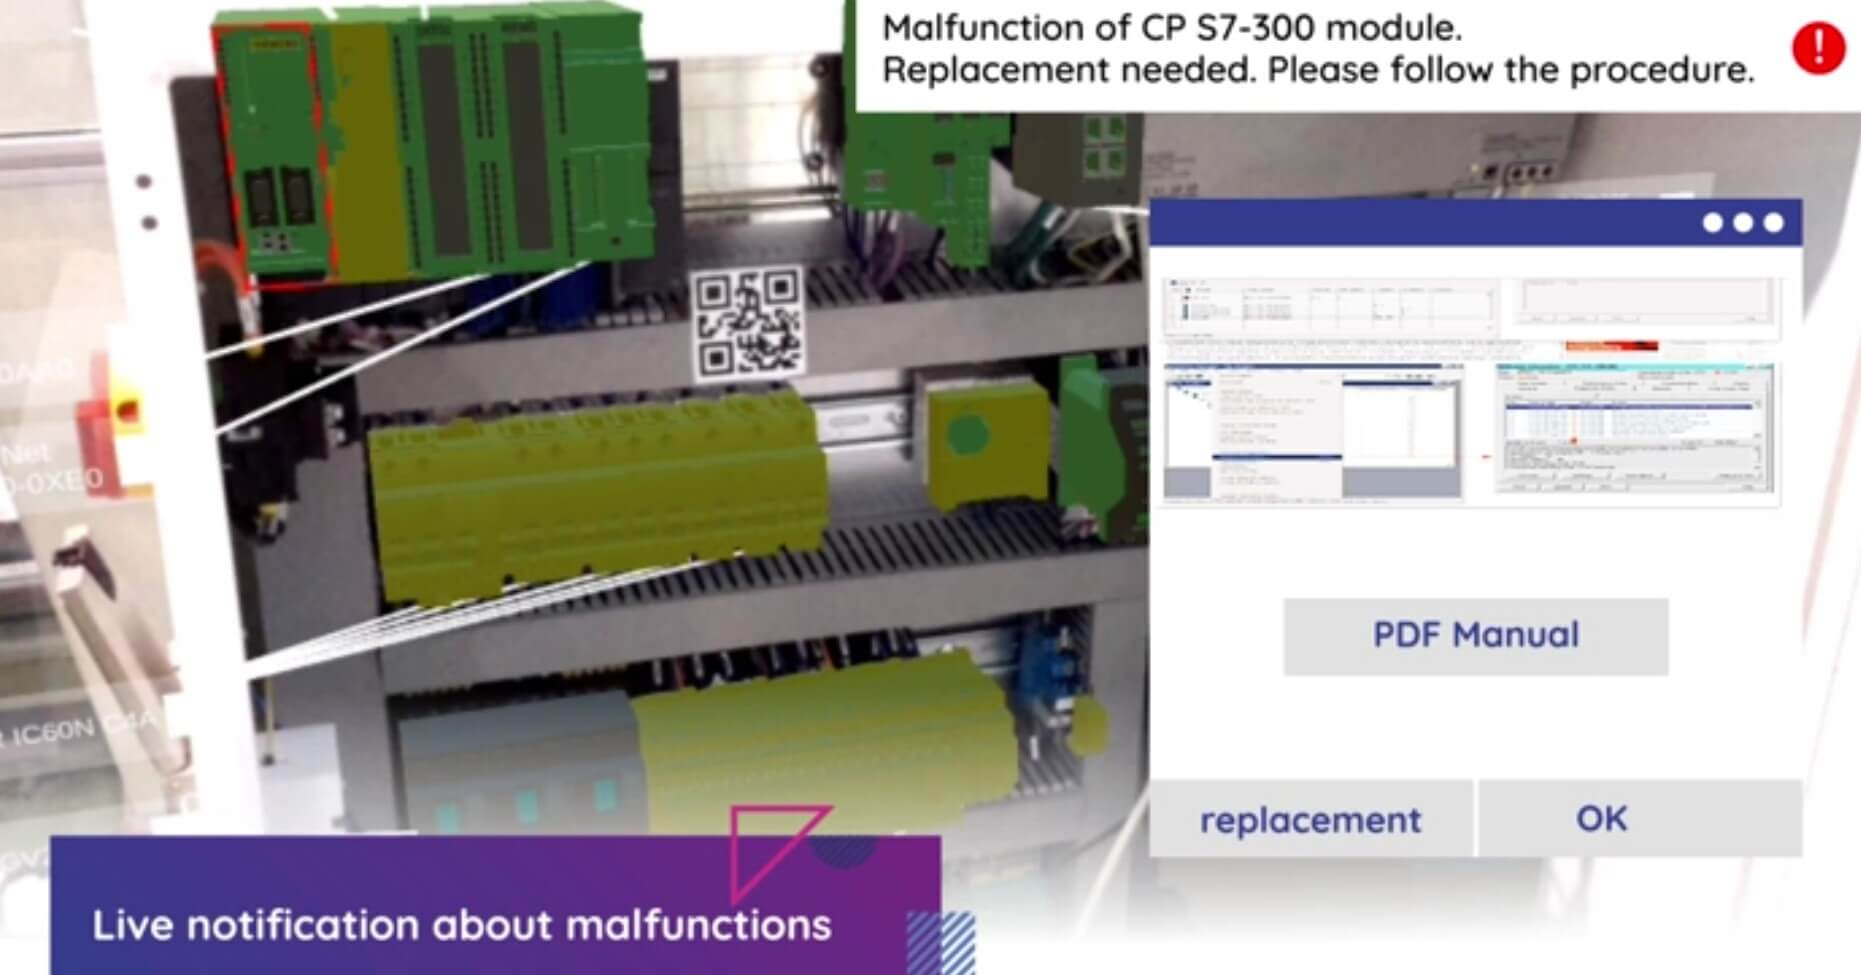 Fiat, live notification about malfunctions - Case Study. Transition Technologies PSC